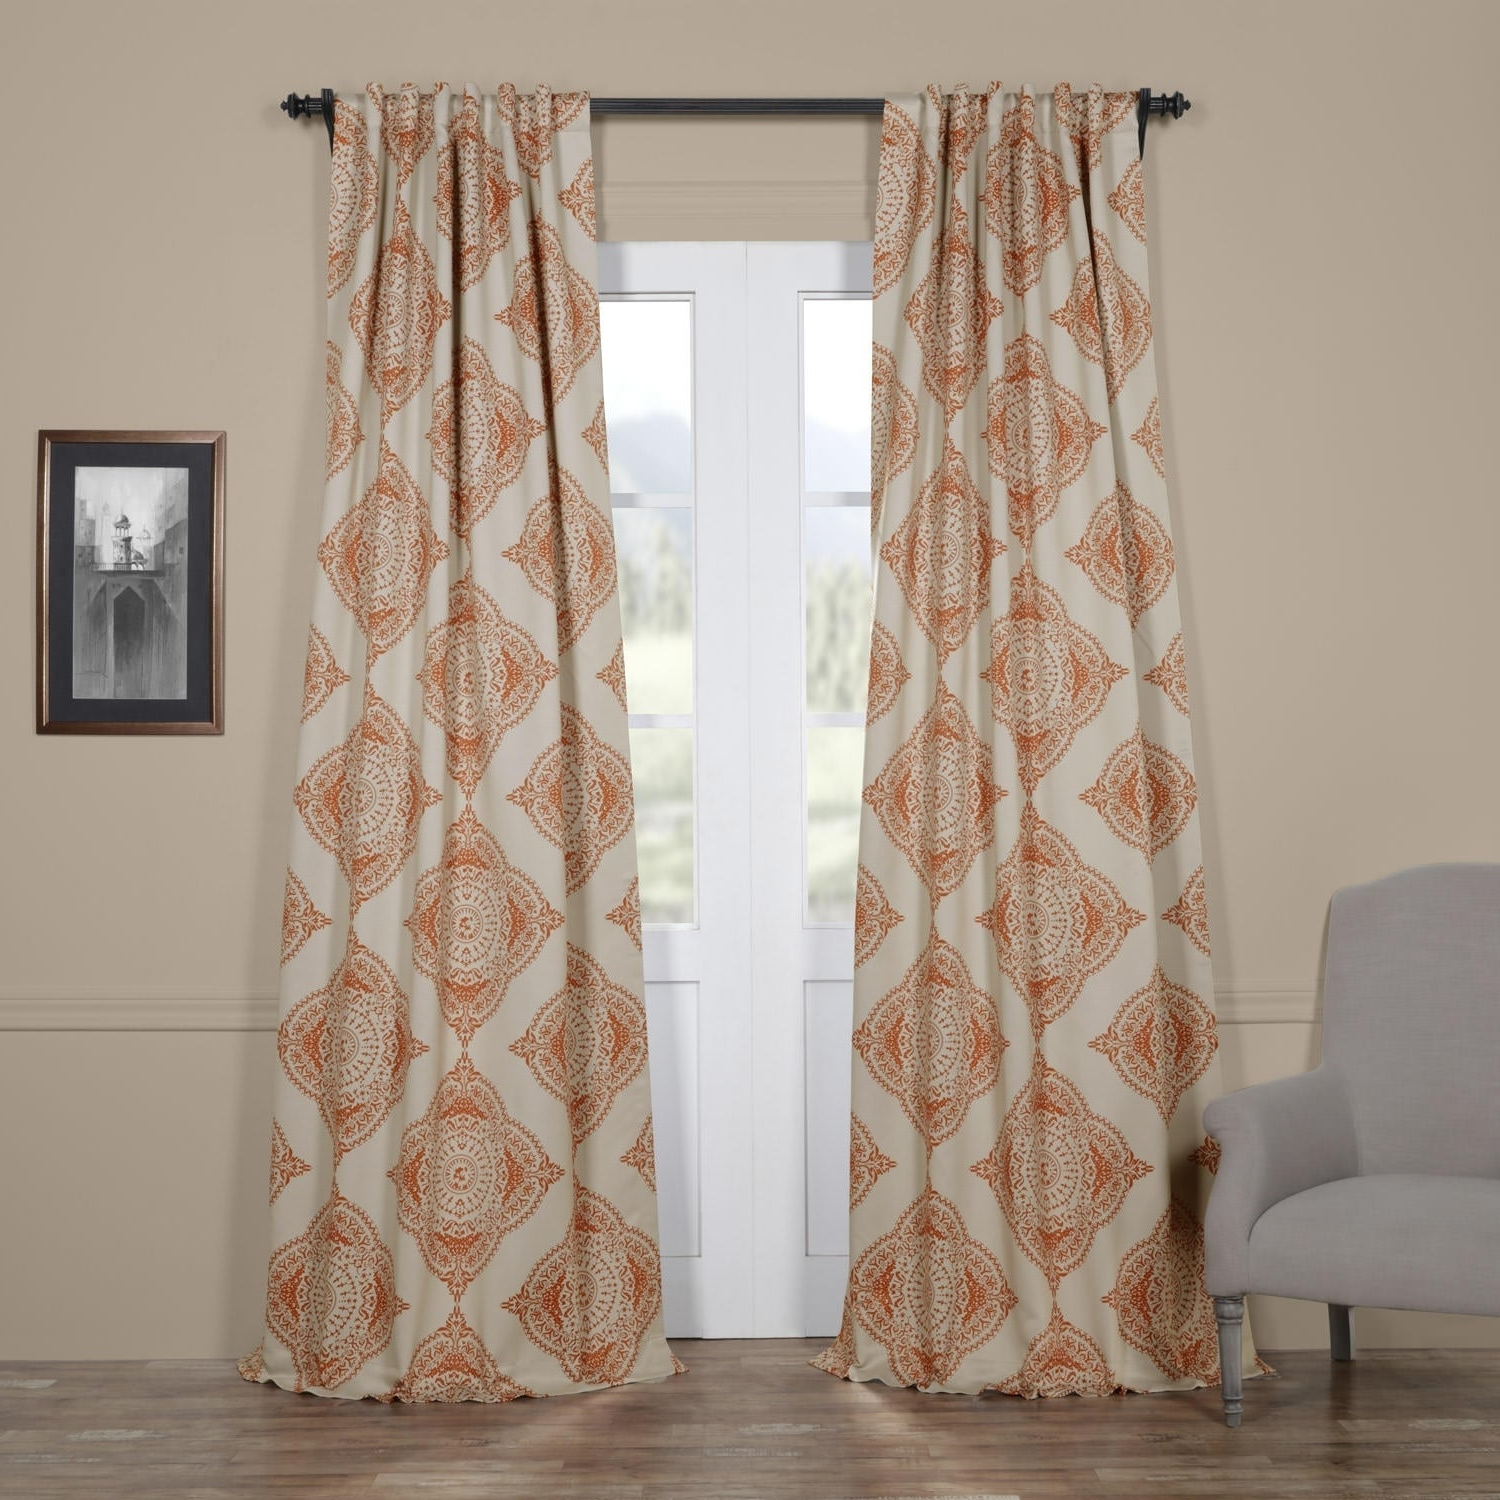 Widely Used Thermal Insulated Blackout Curtain Pairs With Moroccan Style Thermal Insulated Blackout Curtain Panel Pair (View 11 of 20)